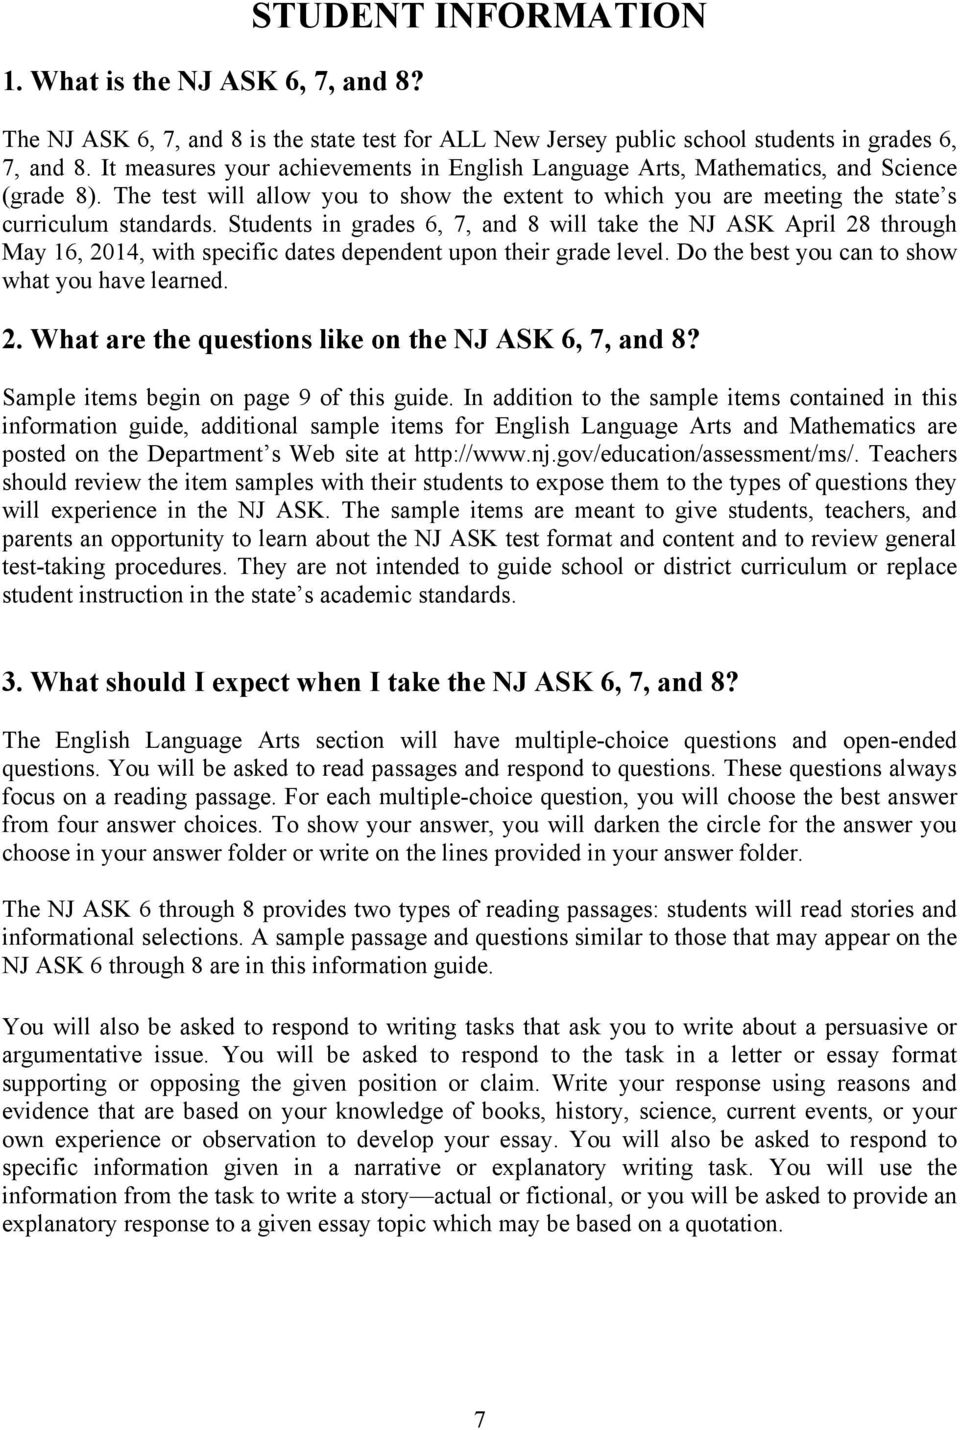 Students in grades 6, 7, and 8 will take the NJ ASK April 28 through May 16, 2014, with specific dates dependent upon their grade level. Do the best you can to show what you have learned. 2. What are the questions like on the NJ ASK 6, 7, and 8?